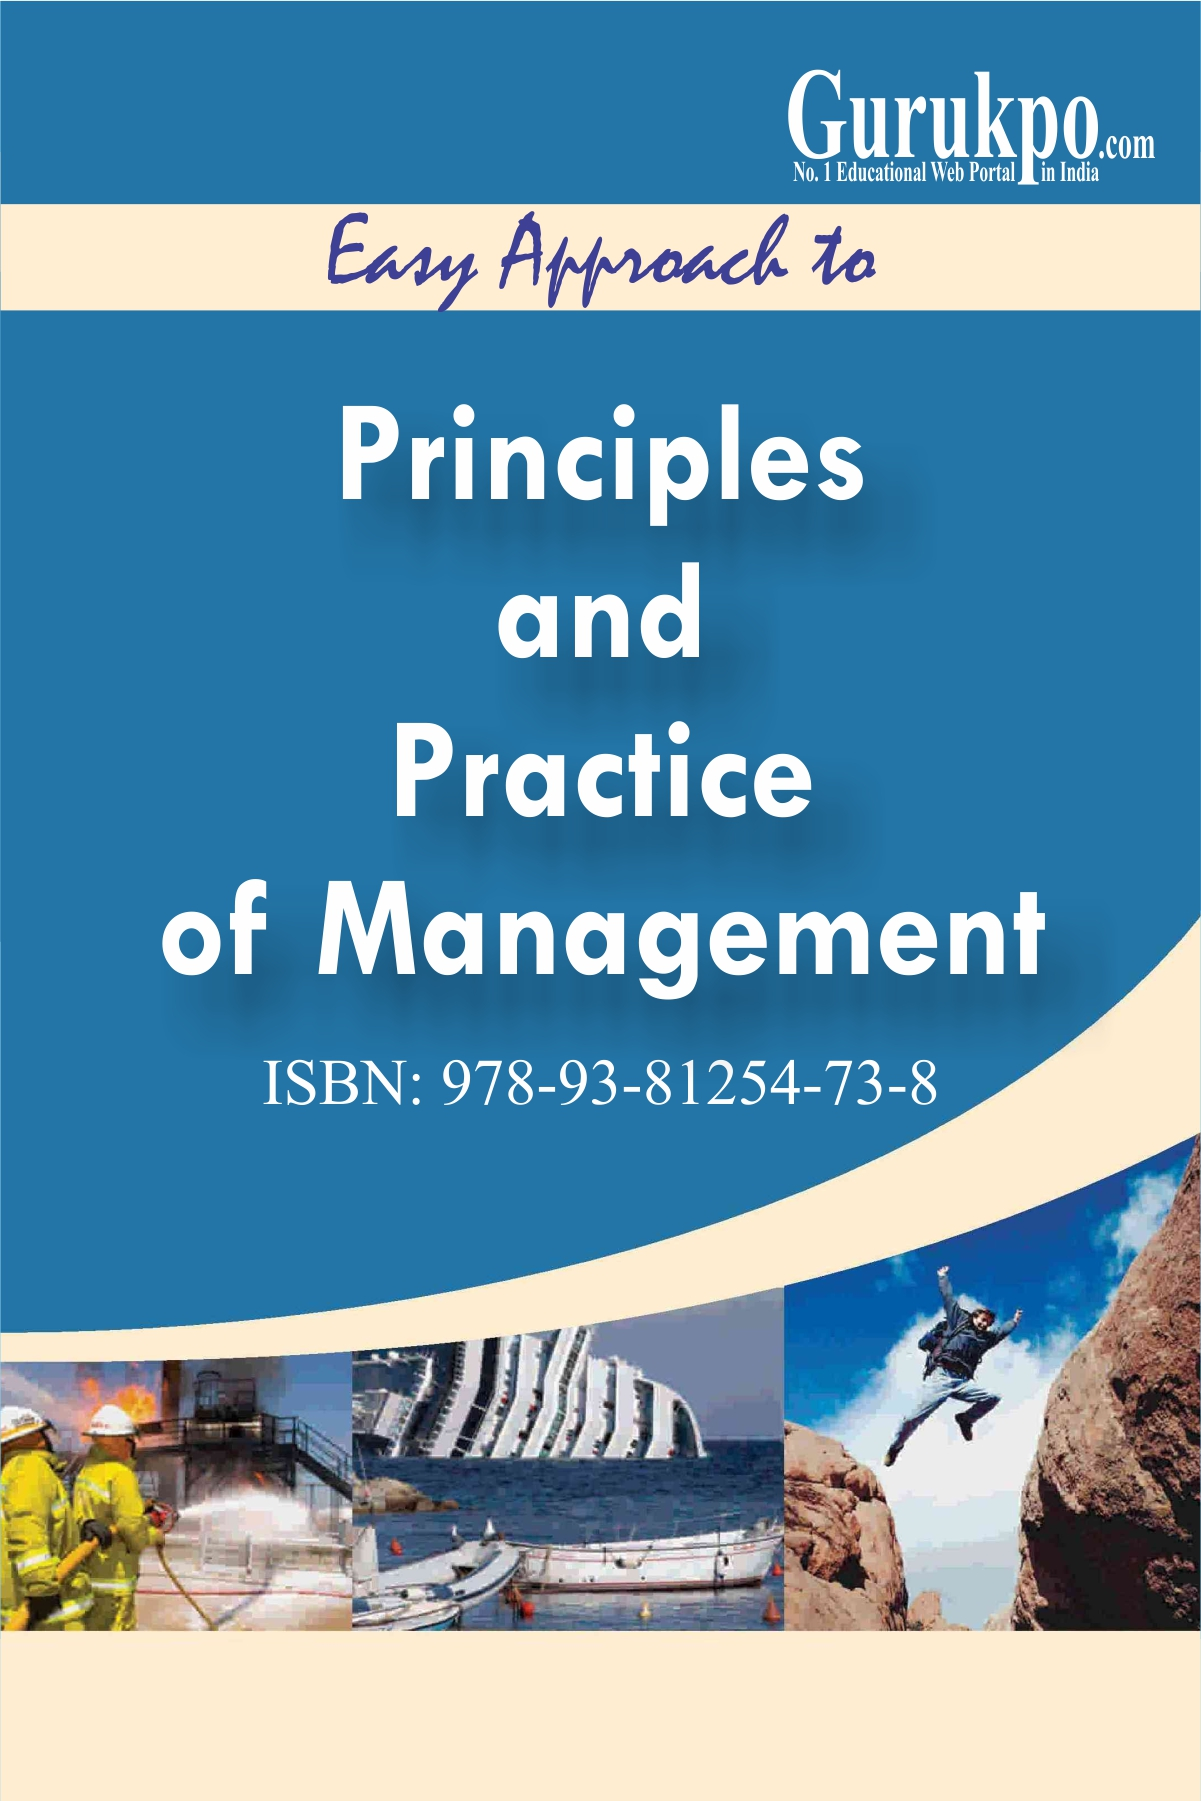 management principles practice essay Mg 1351 - principles of management 20 essay questions and - free download as pdf file (pdf), text file (txt) or read online for free.